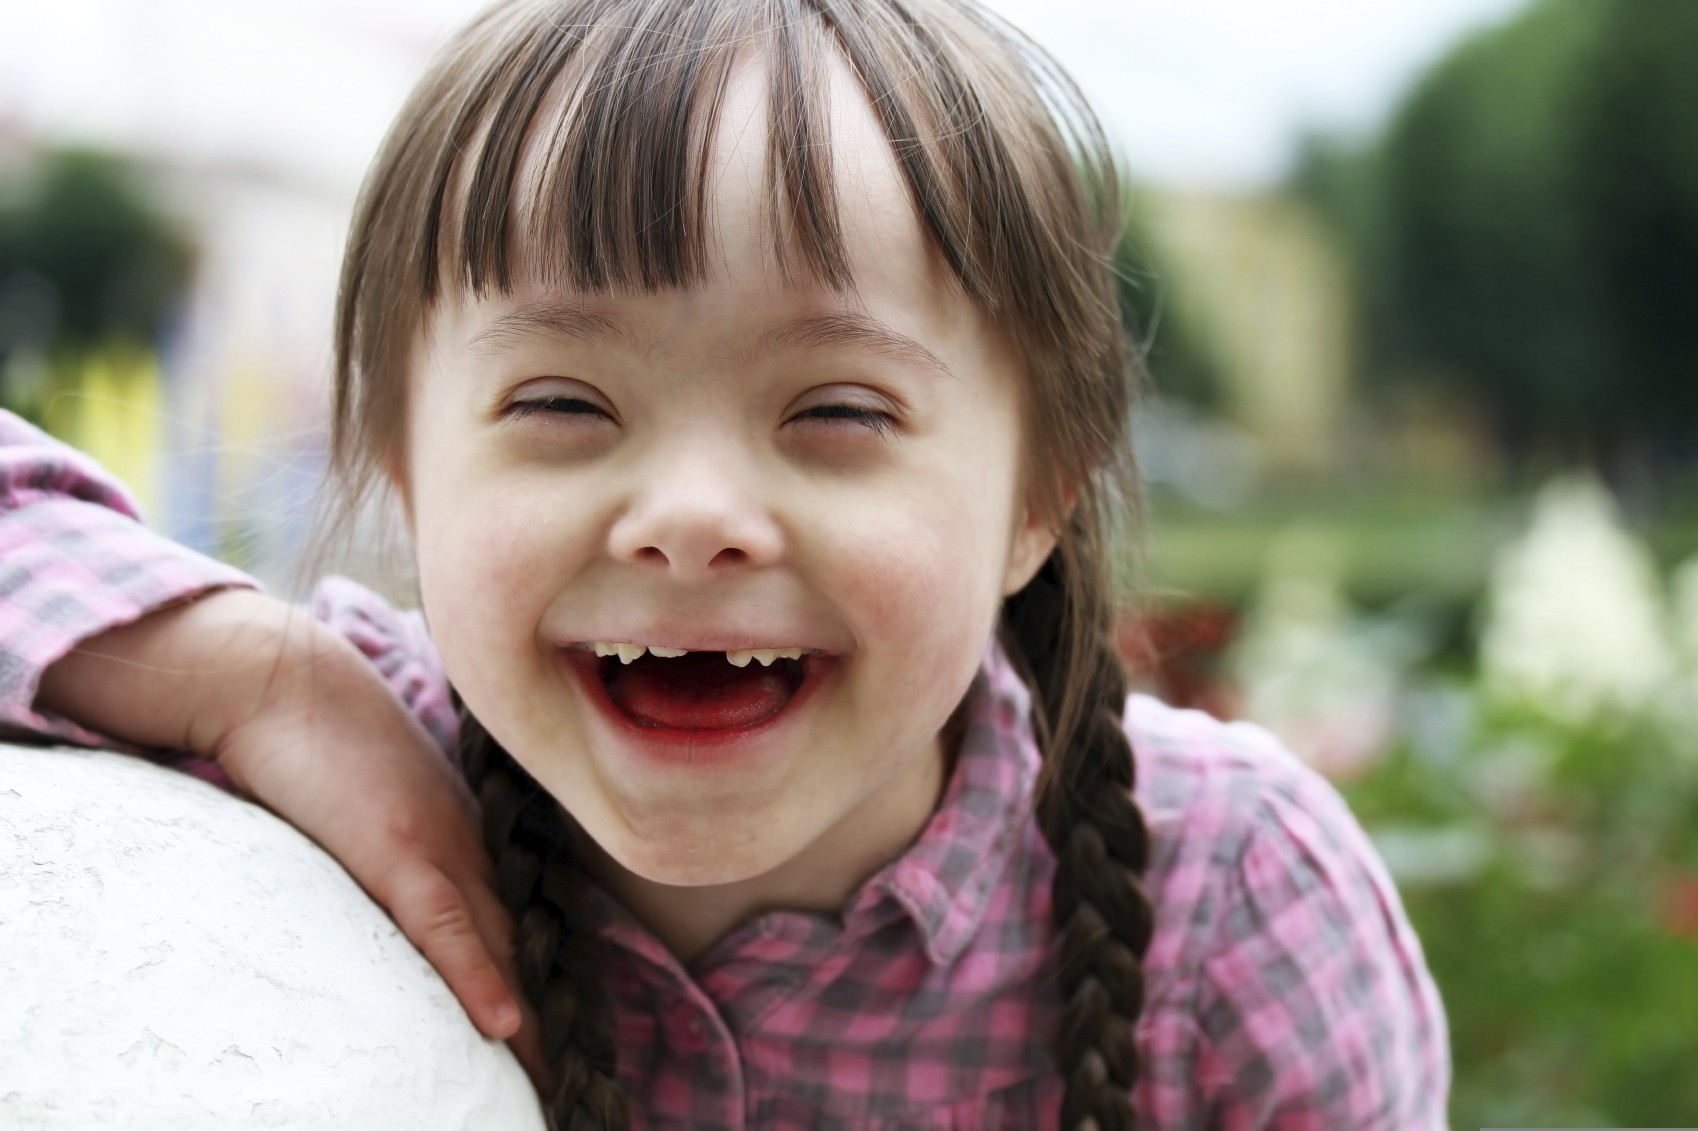 Young child with Down syndrome laughing